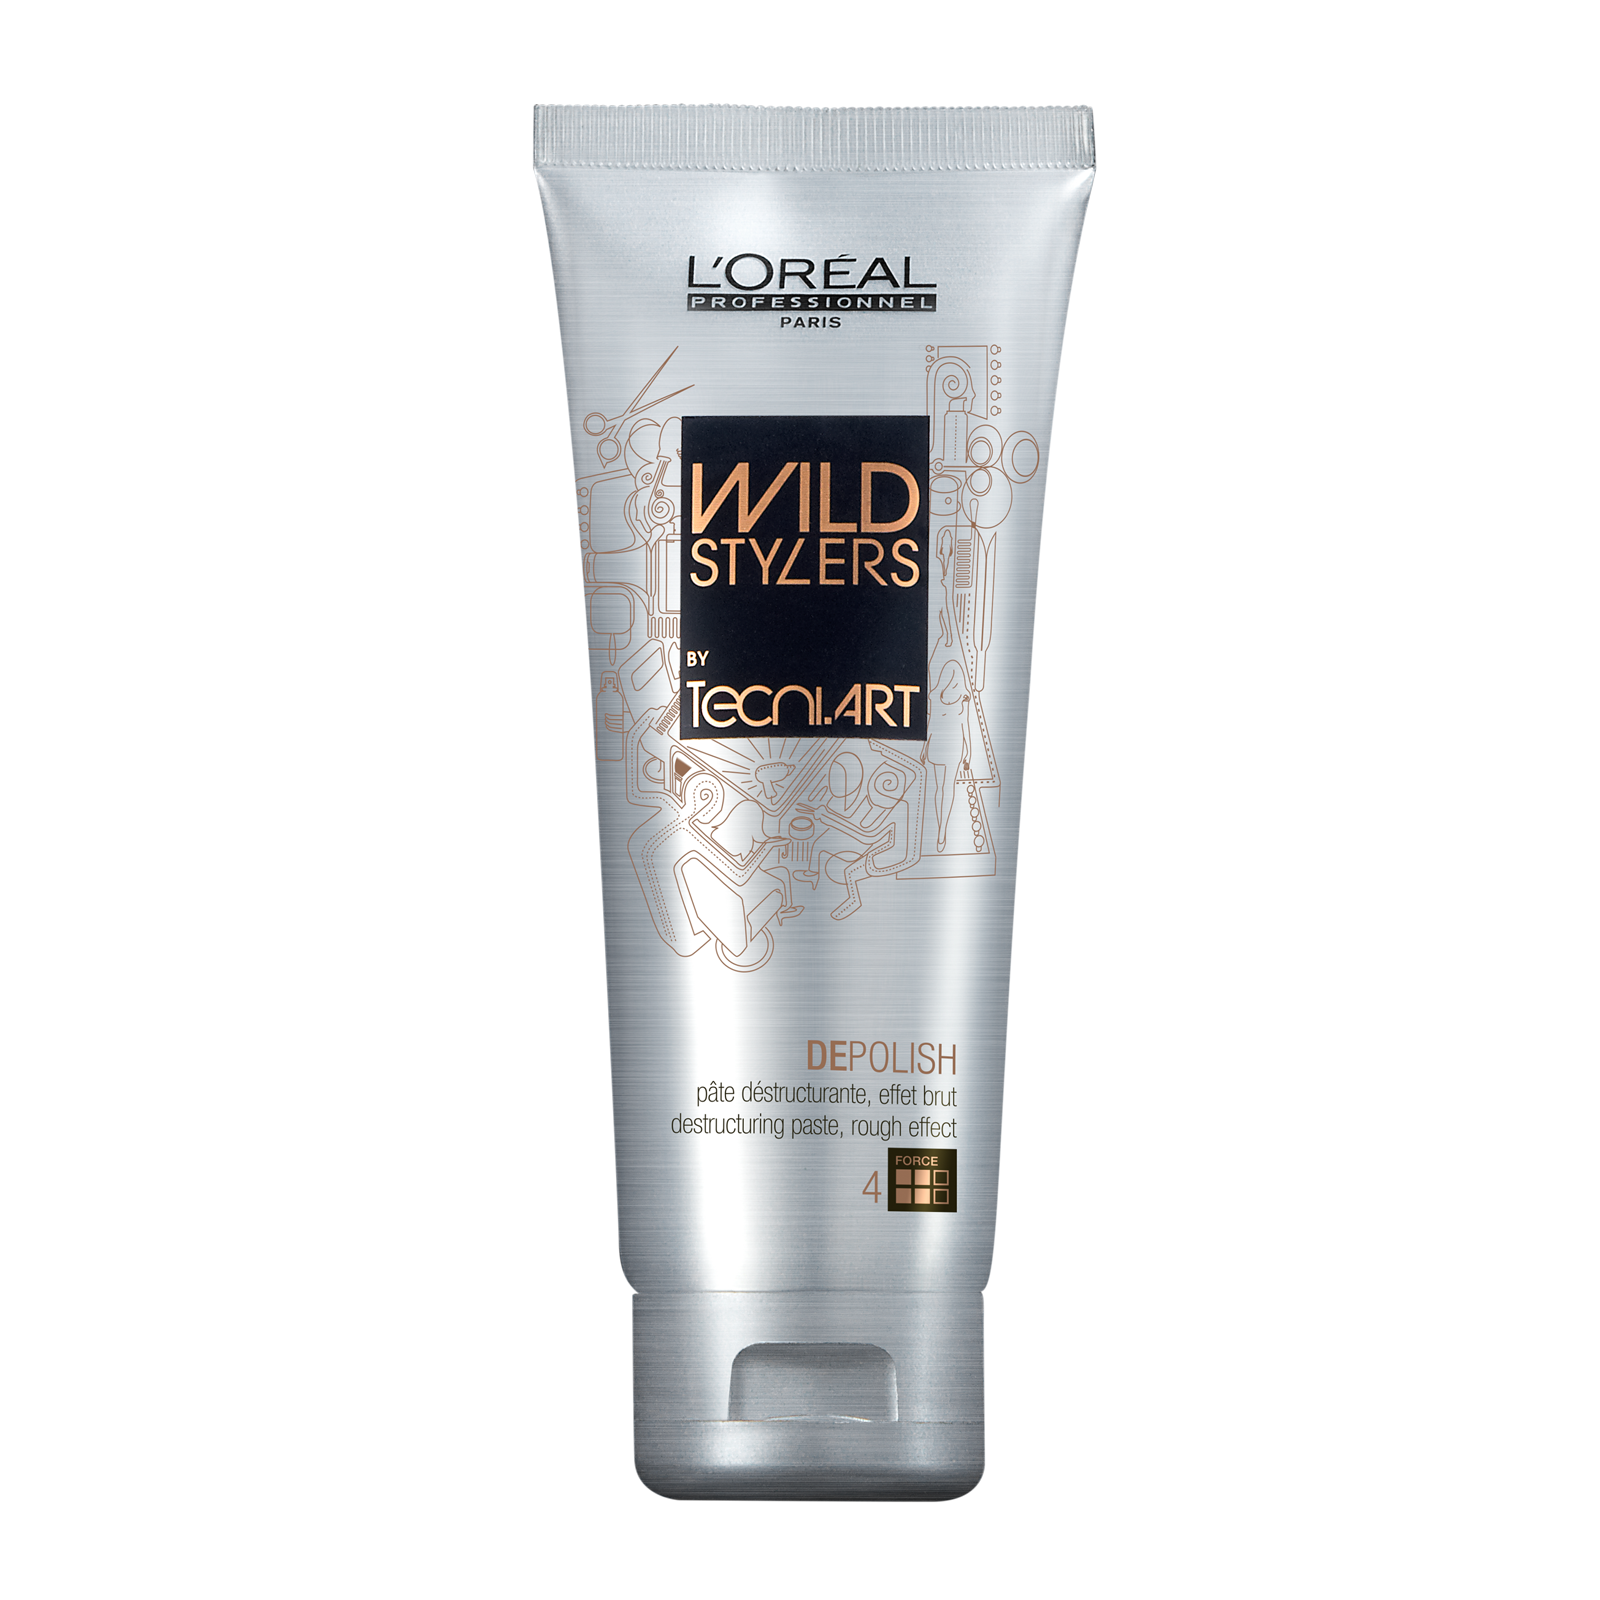 L'OREAL Wild Stylers Tecni Art Depolish 100ml